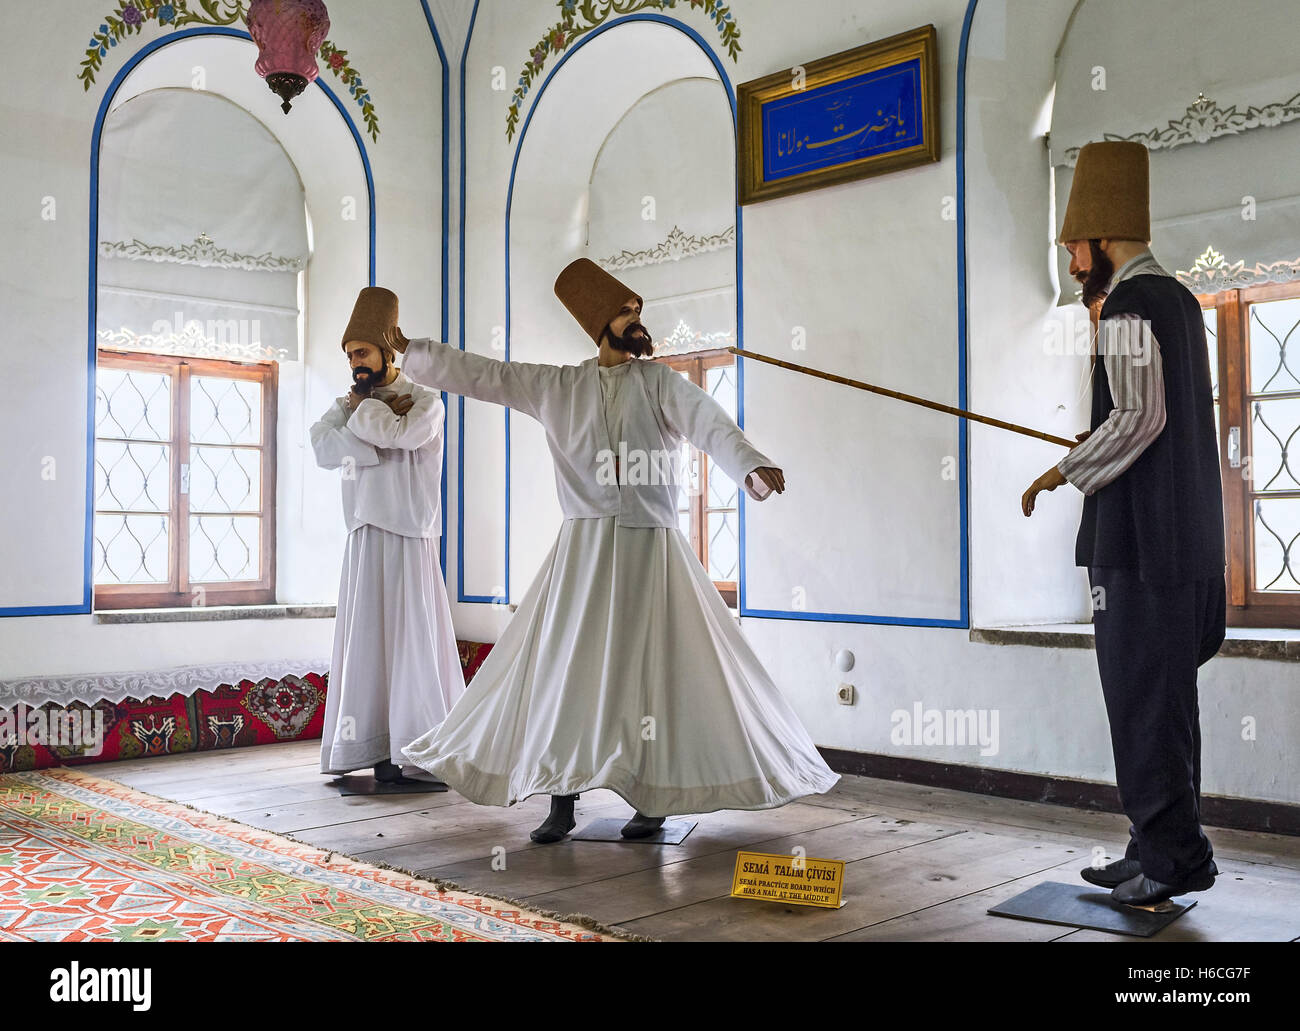 The mannequins of dervishes in Mevlana Museum depict the ceremony of ritual dervish whirling dance, an active meditation - Stock Image